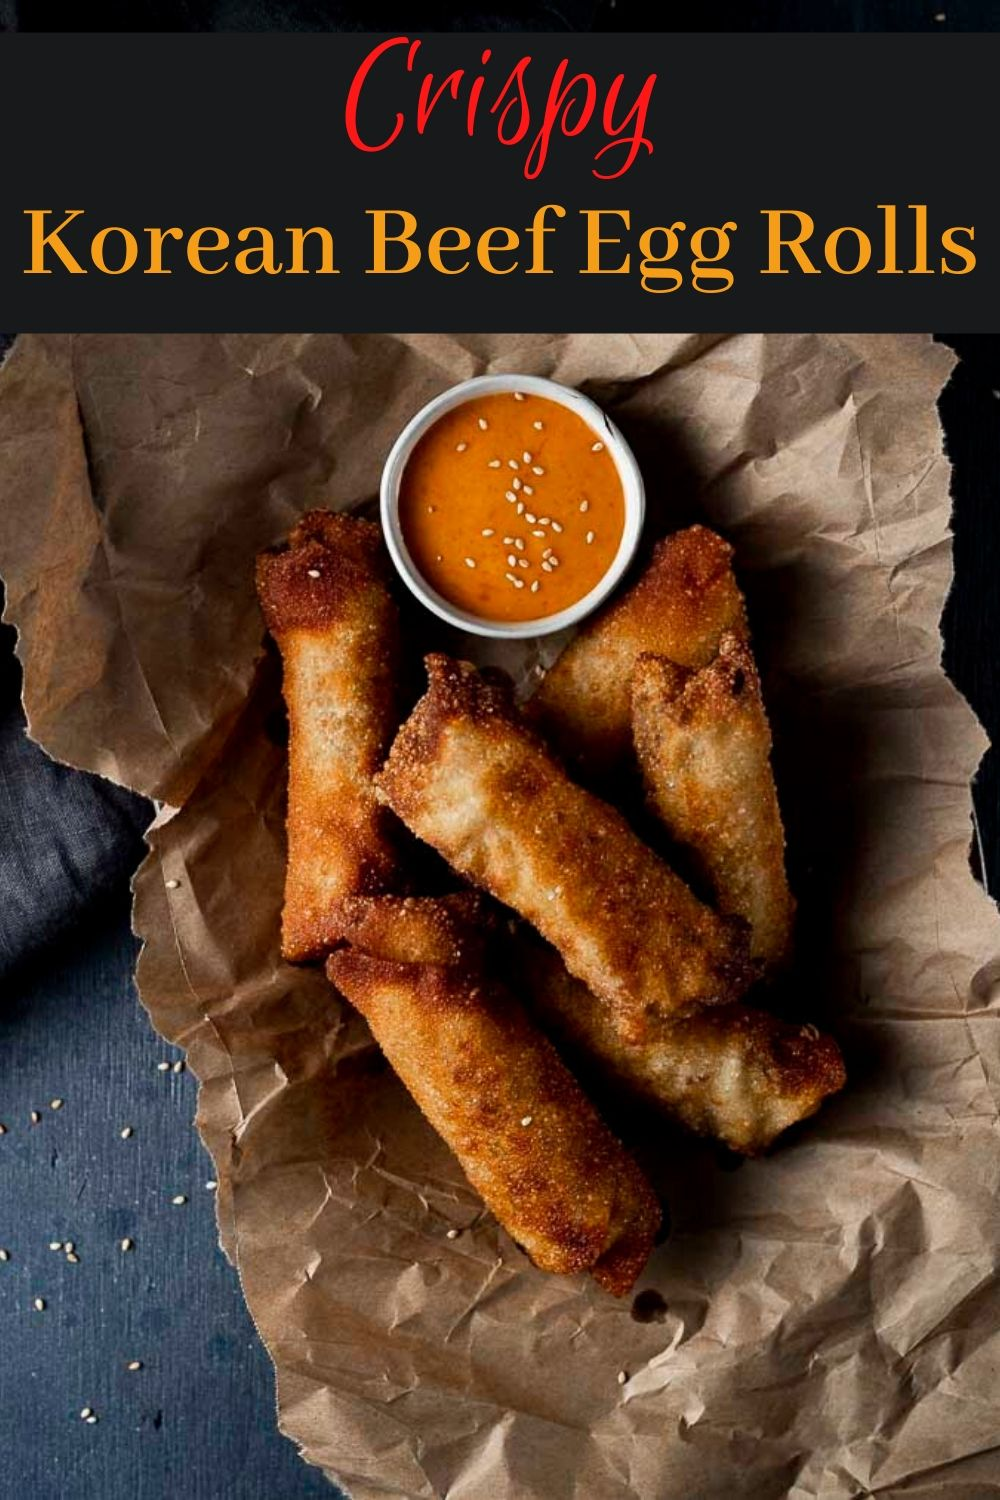 Fried Korean Egg Rolls with Ground Beef